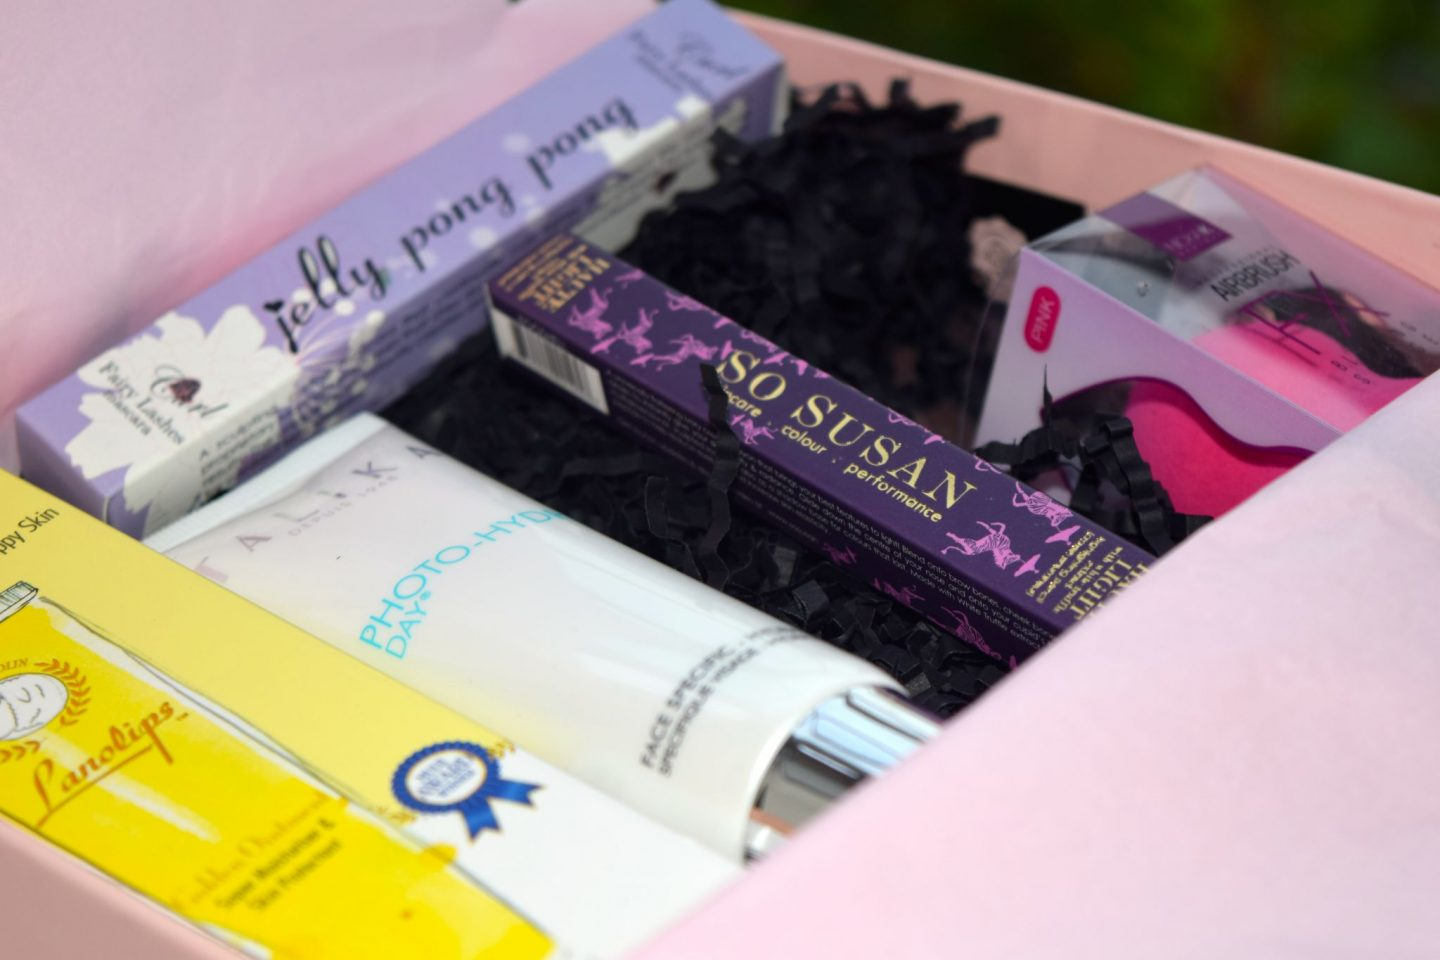 Glossybox October 2015 UK contents